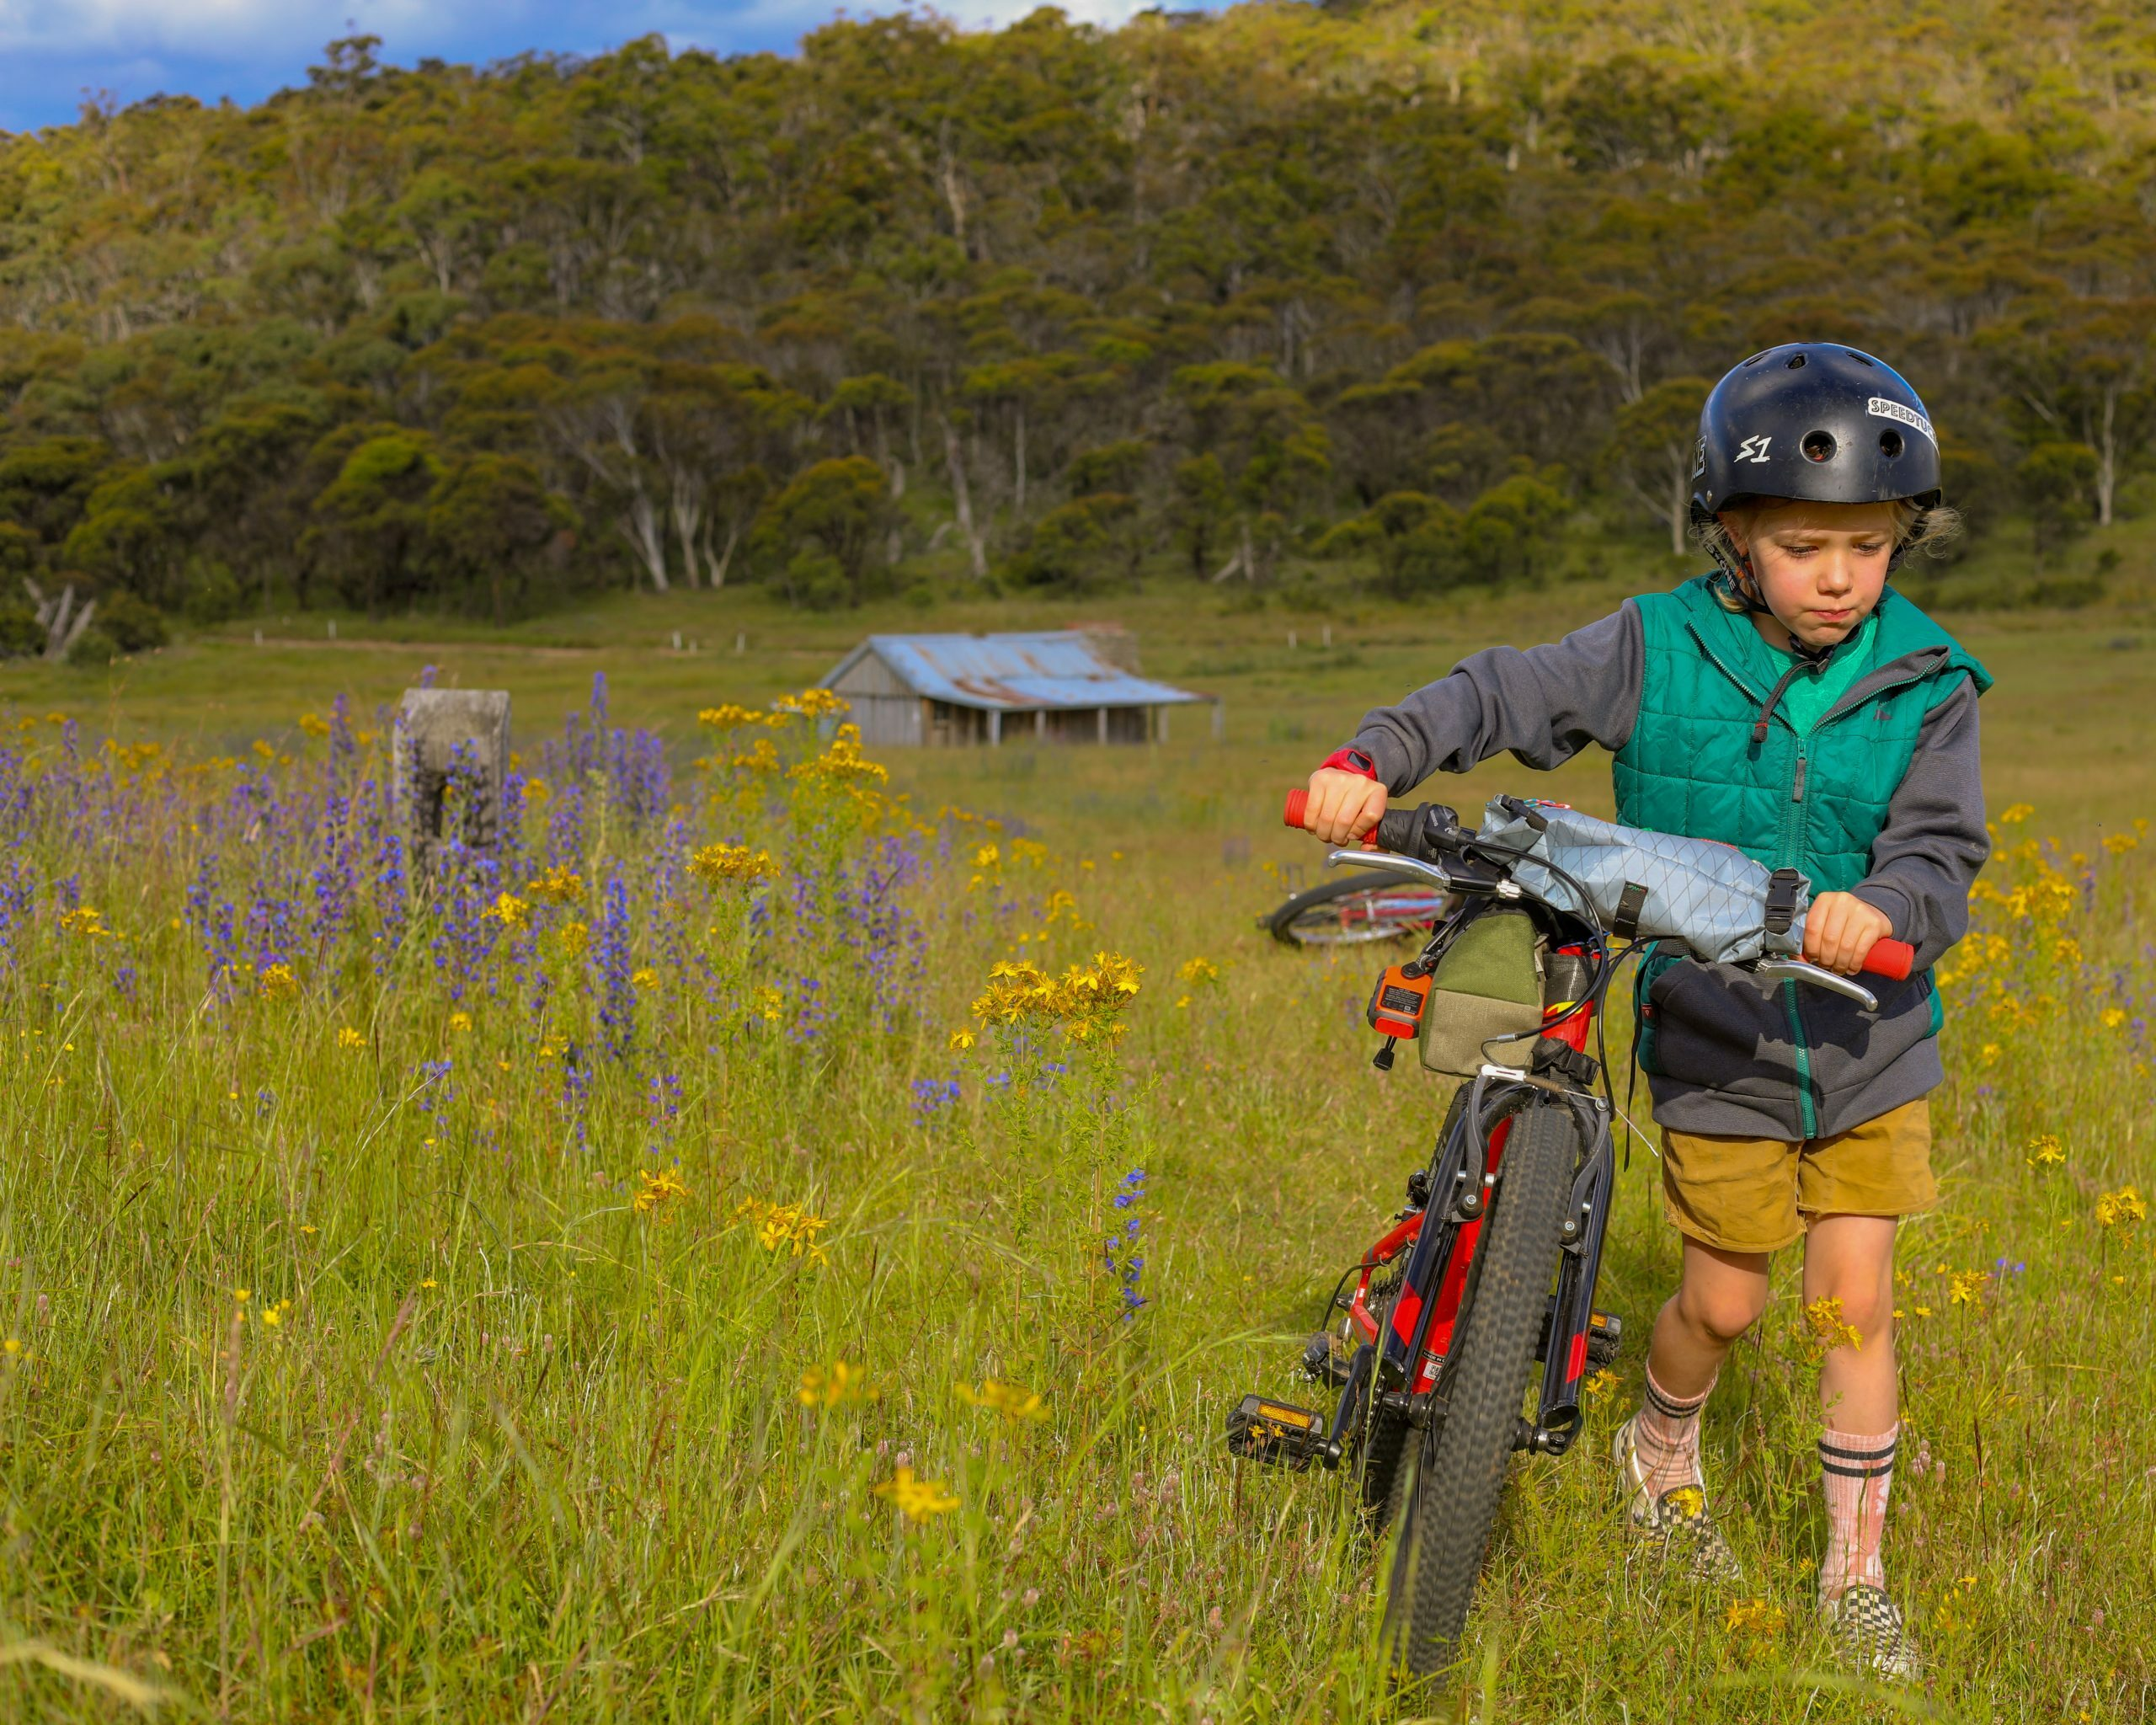 Bikepacking with a six year old by Mattie Gould